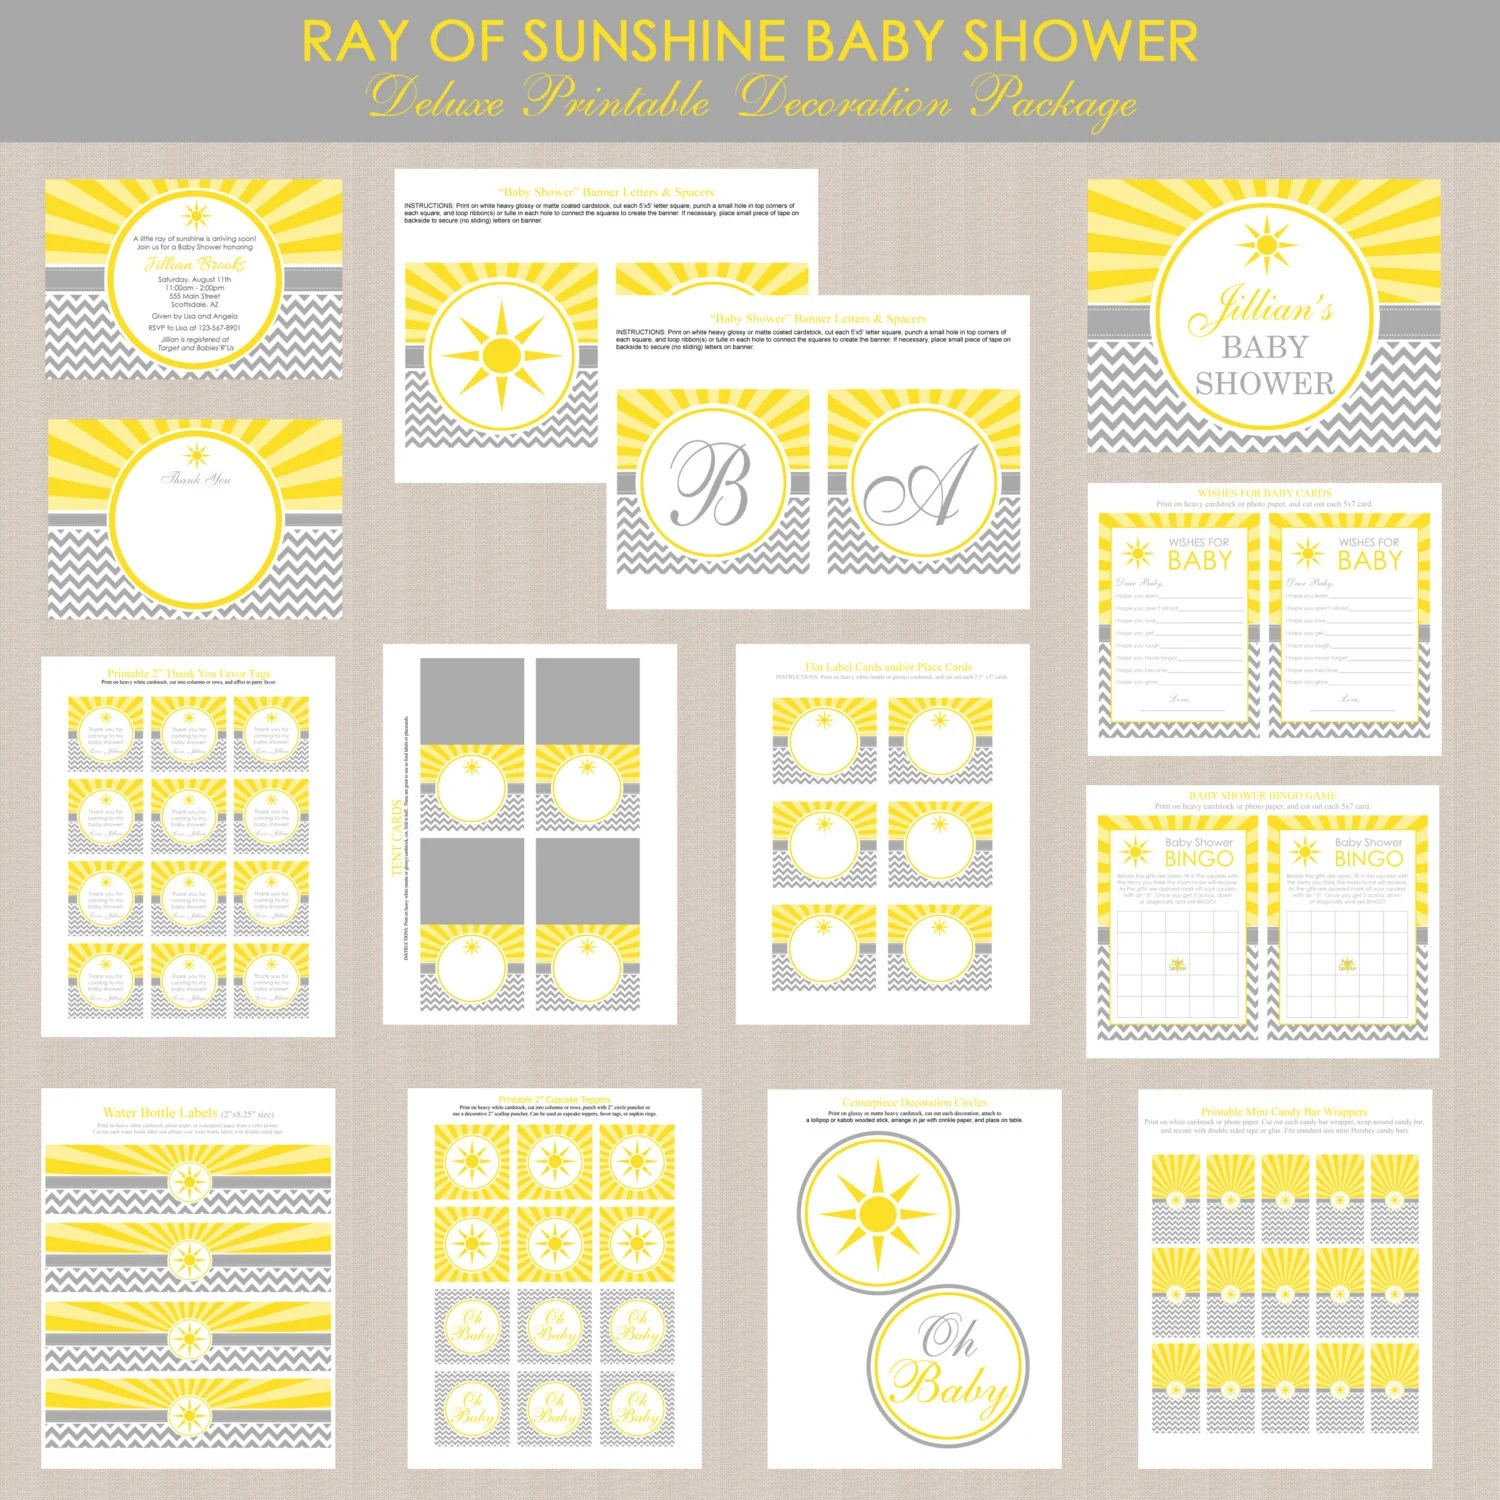 Ray Of Sunshine Baby Shower Printables Package Sunshine Baby